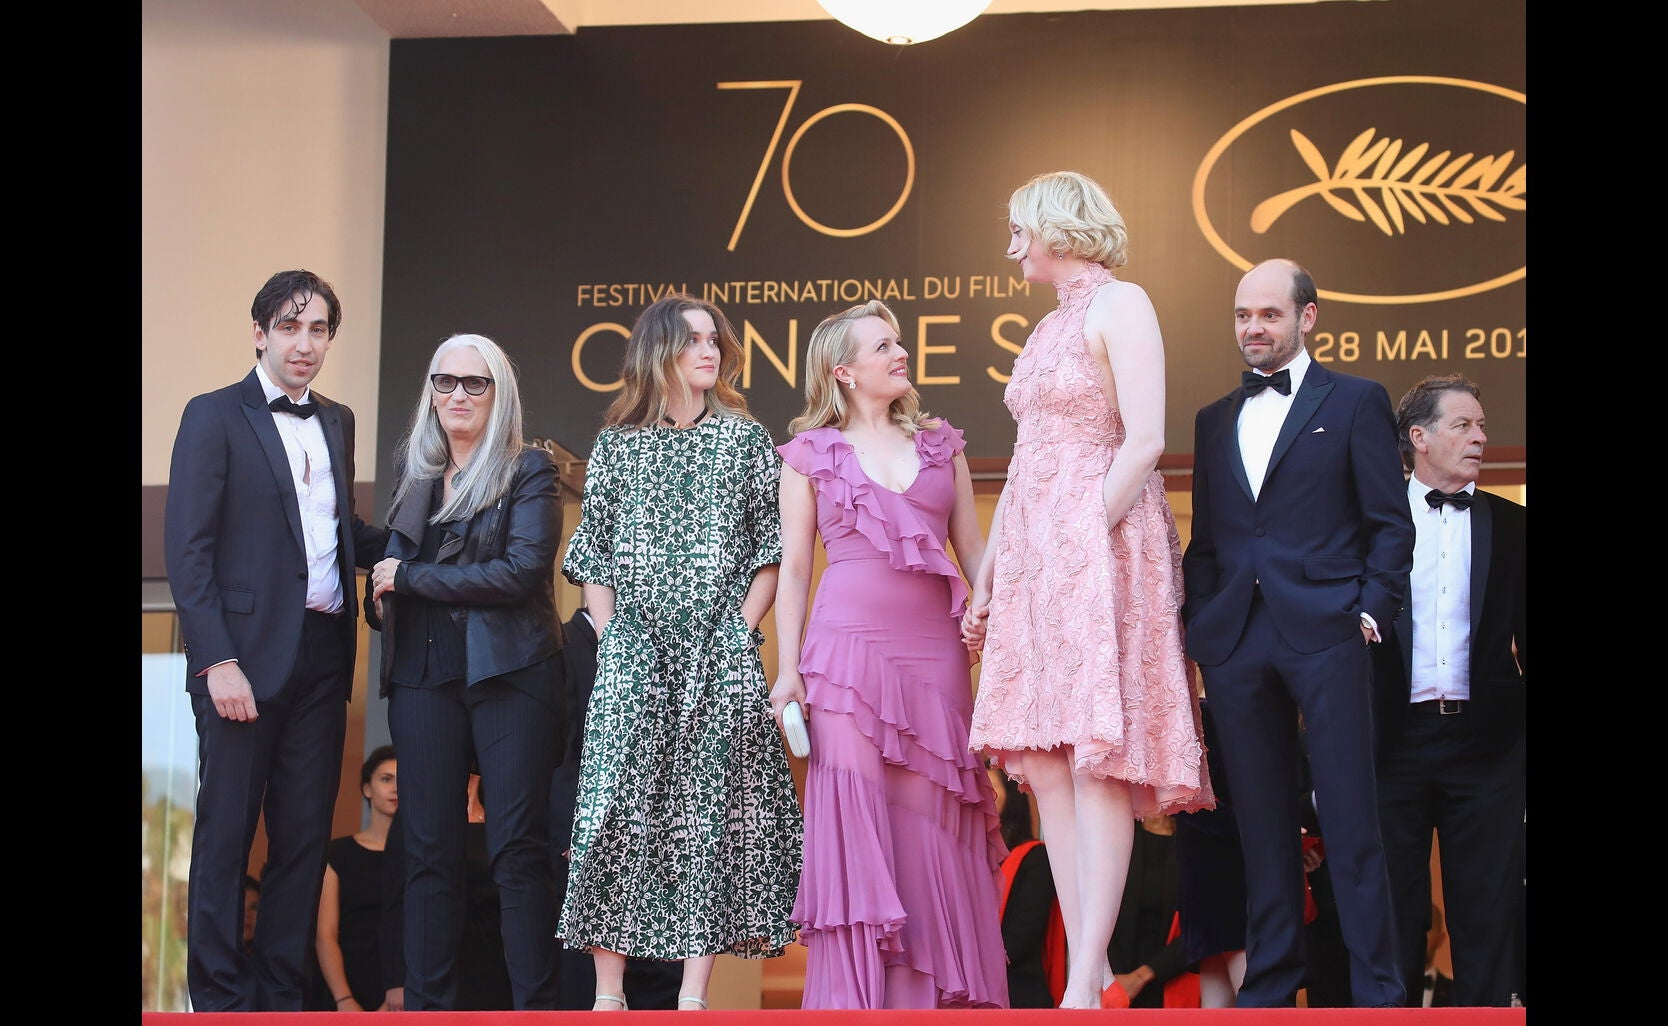 Ariel Kleiman, Jane Campion, Alice Engler, Elisabeth Moss, Gwendoline Christie and David Dencik